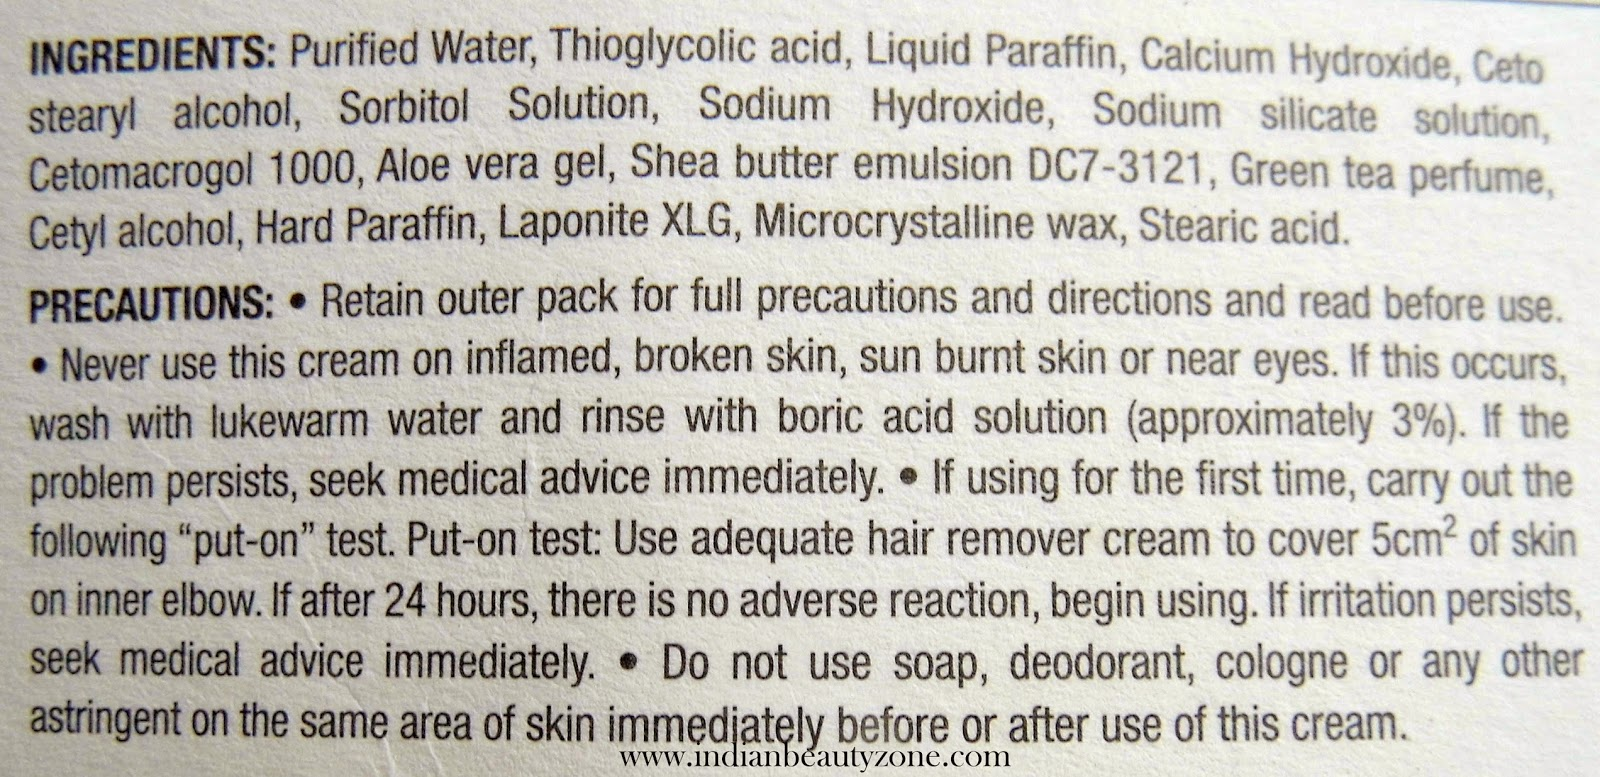 how to use emla cream for hair removal